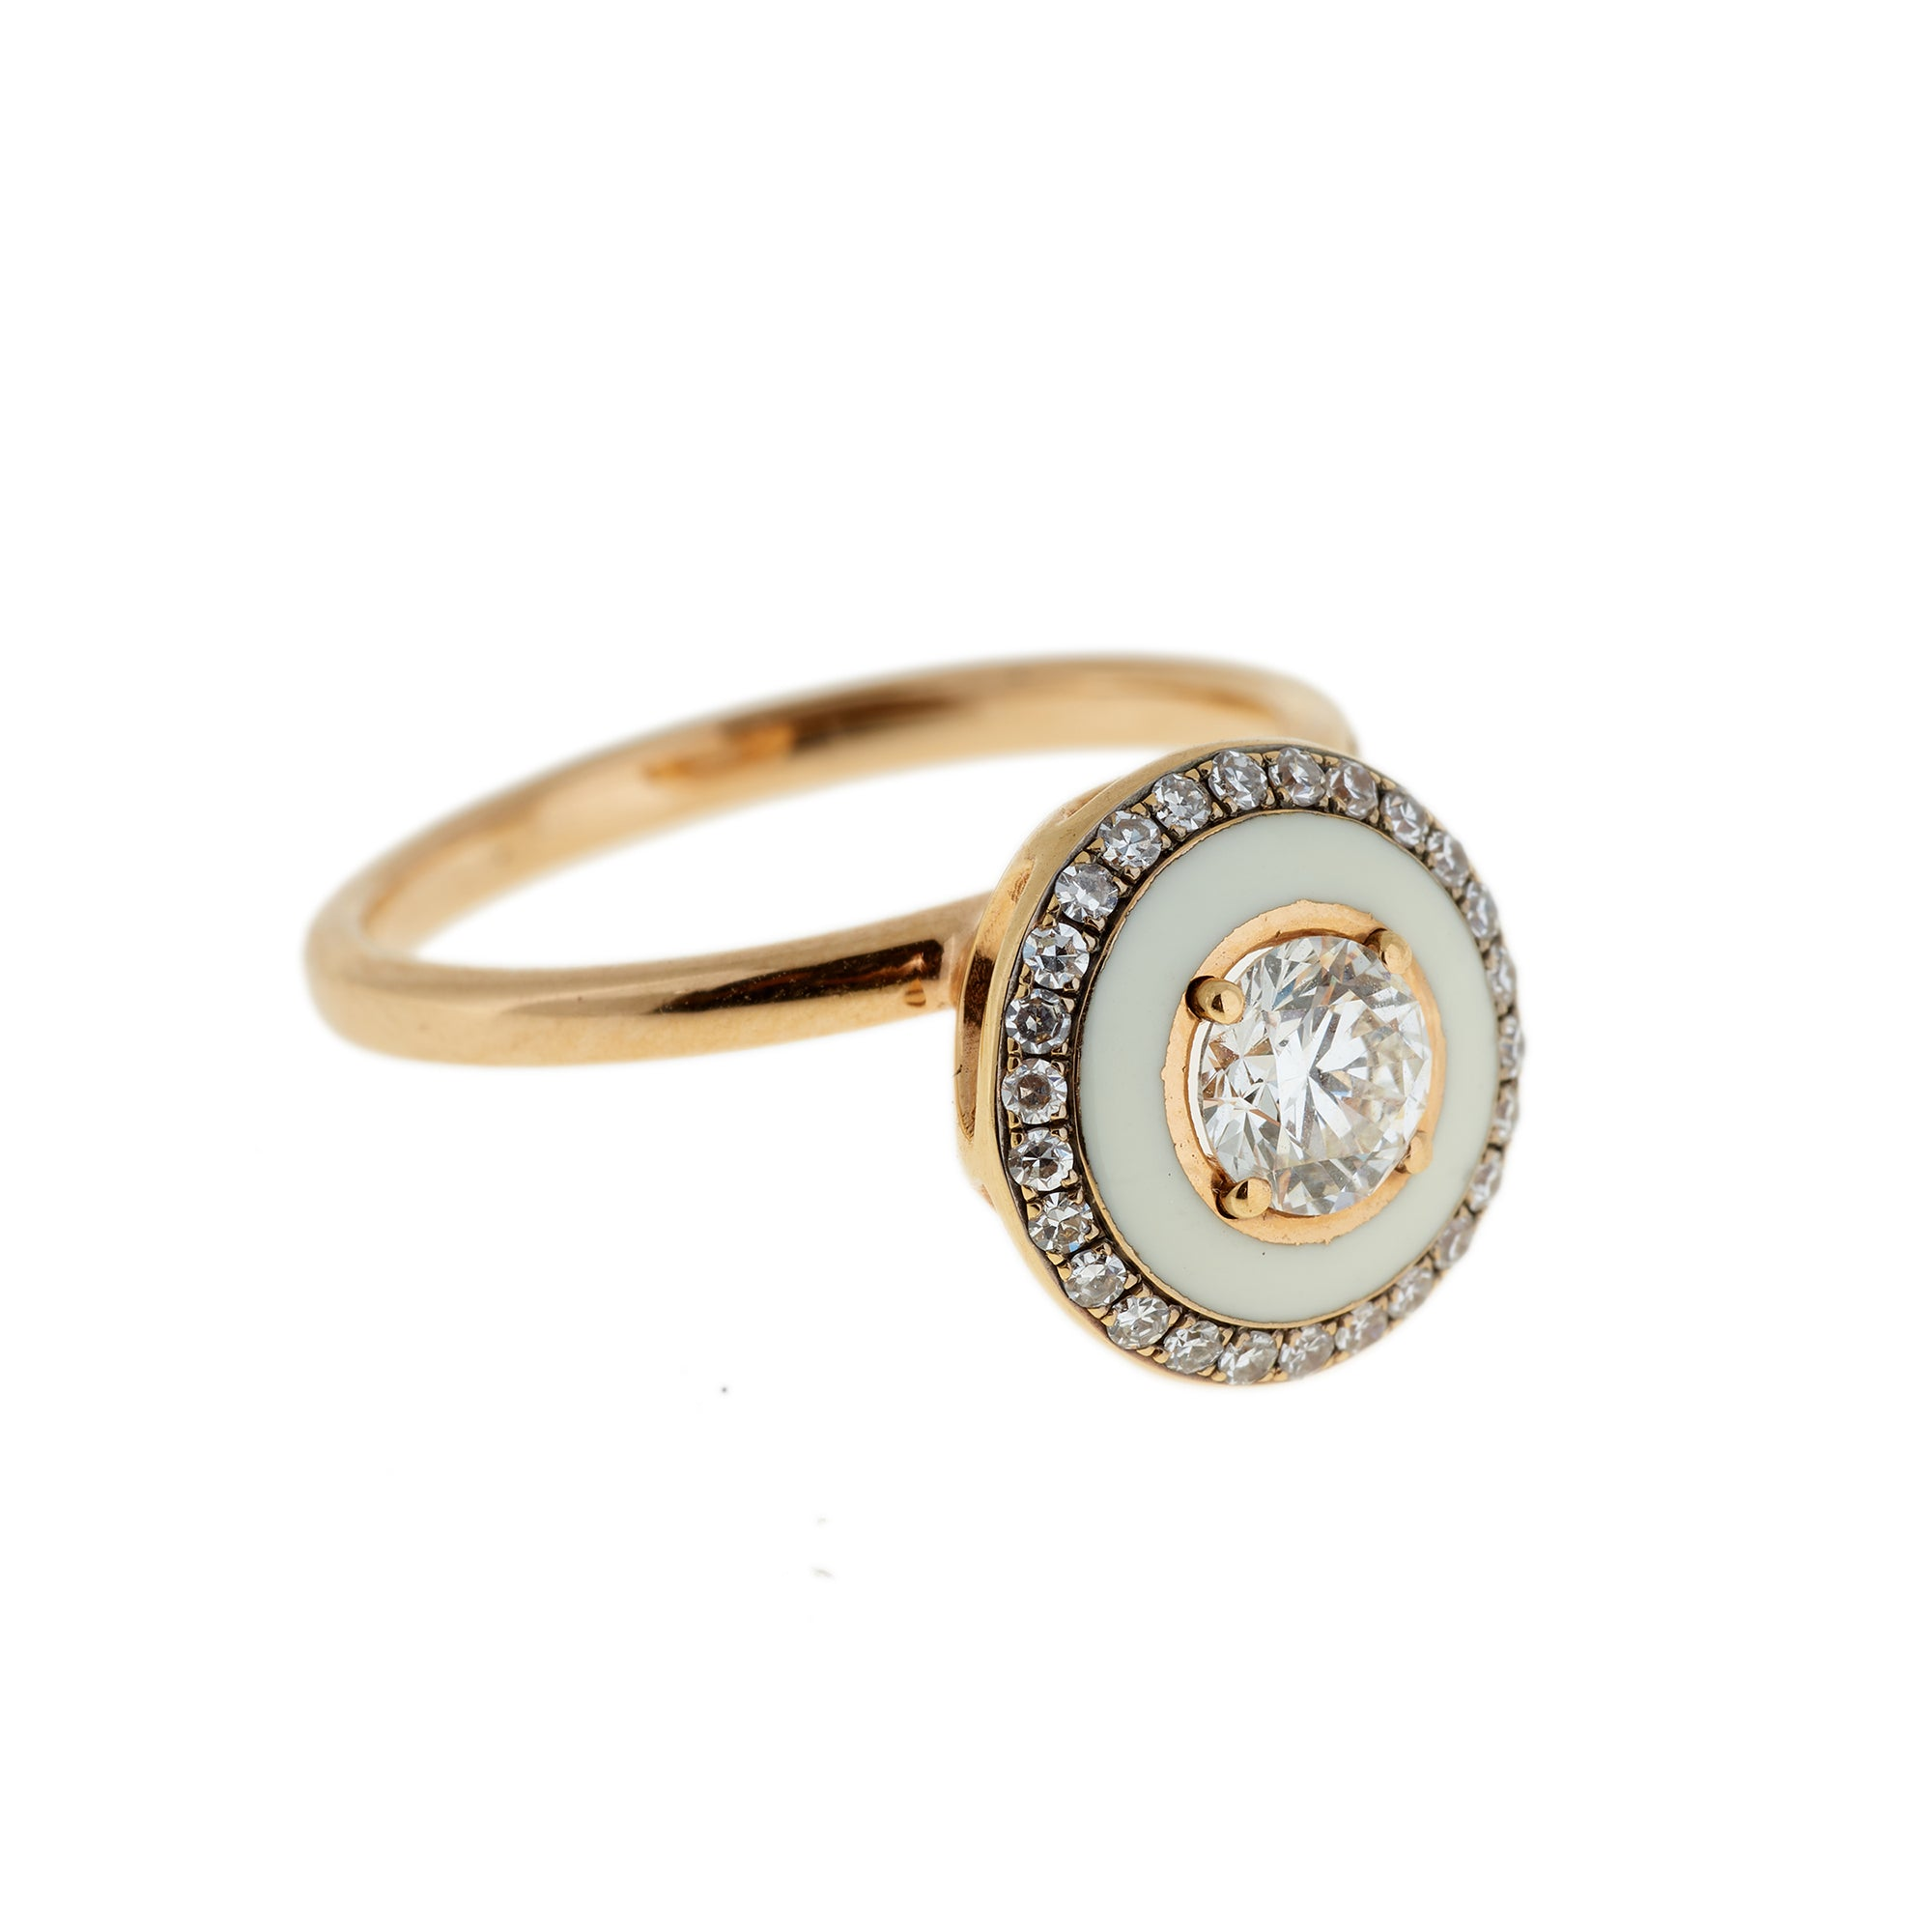 Diamond and Ivory Enamel Ring by Selim Mouzannar for Broken English Jewelry